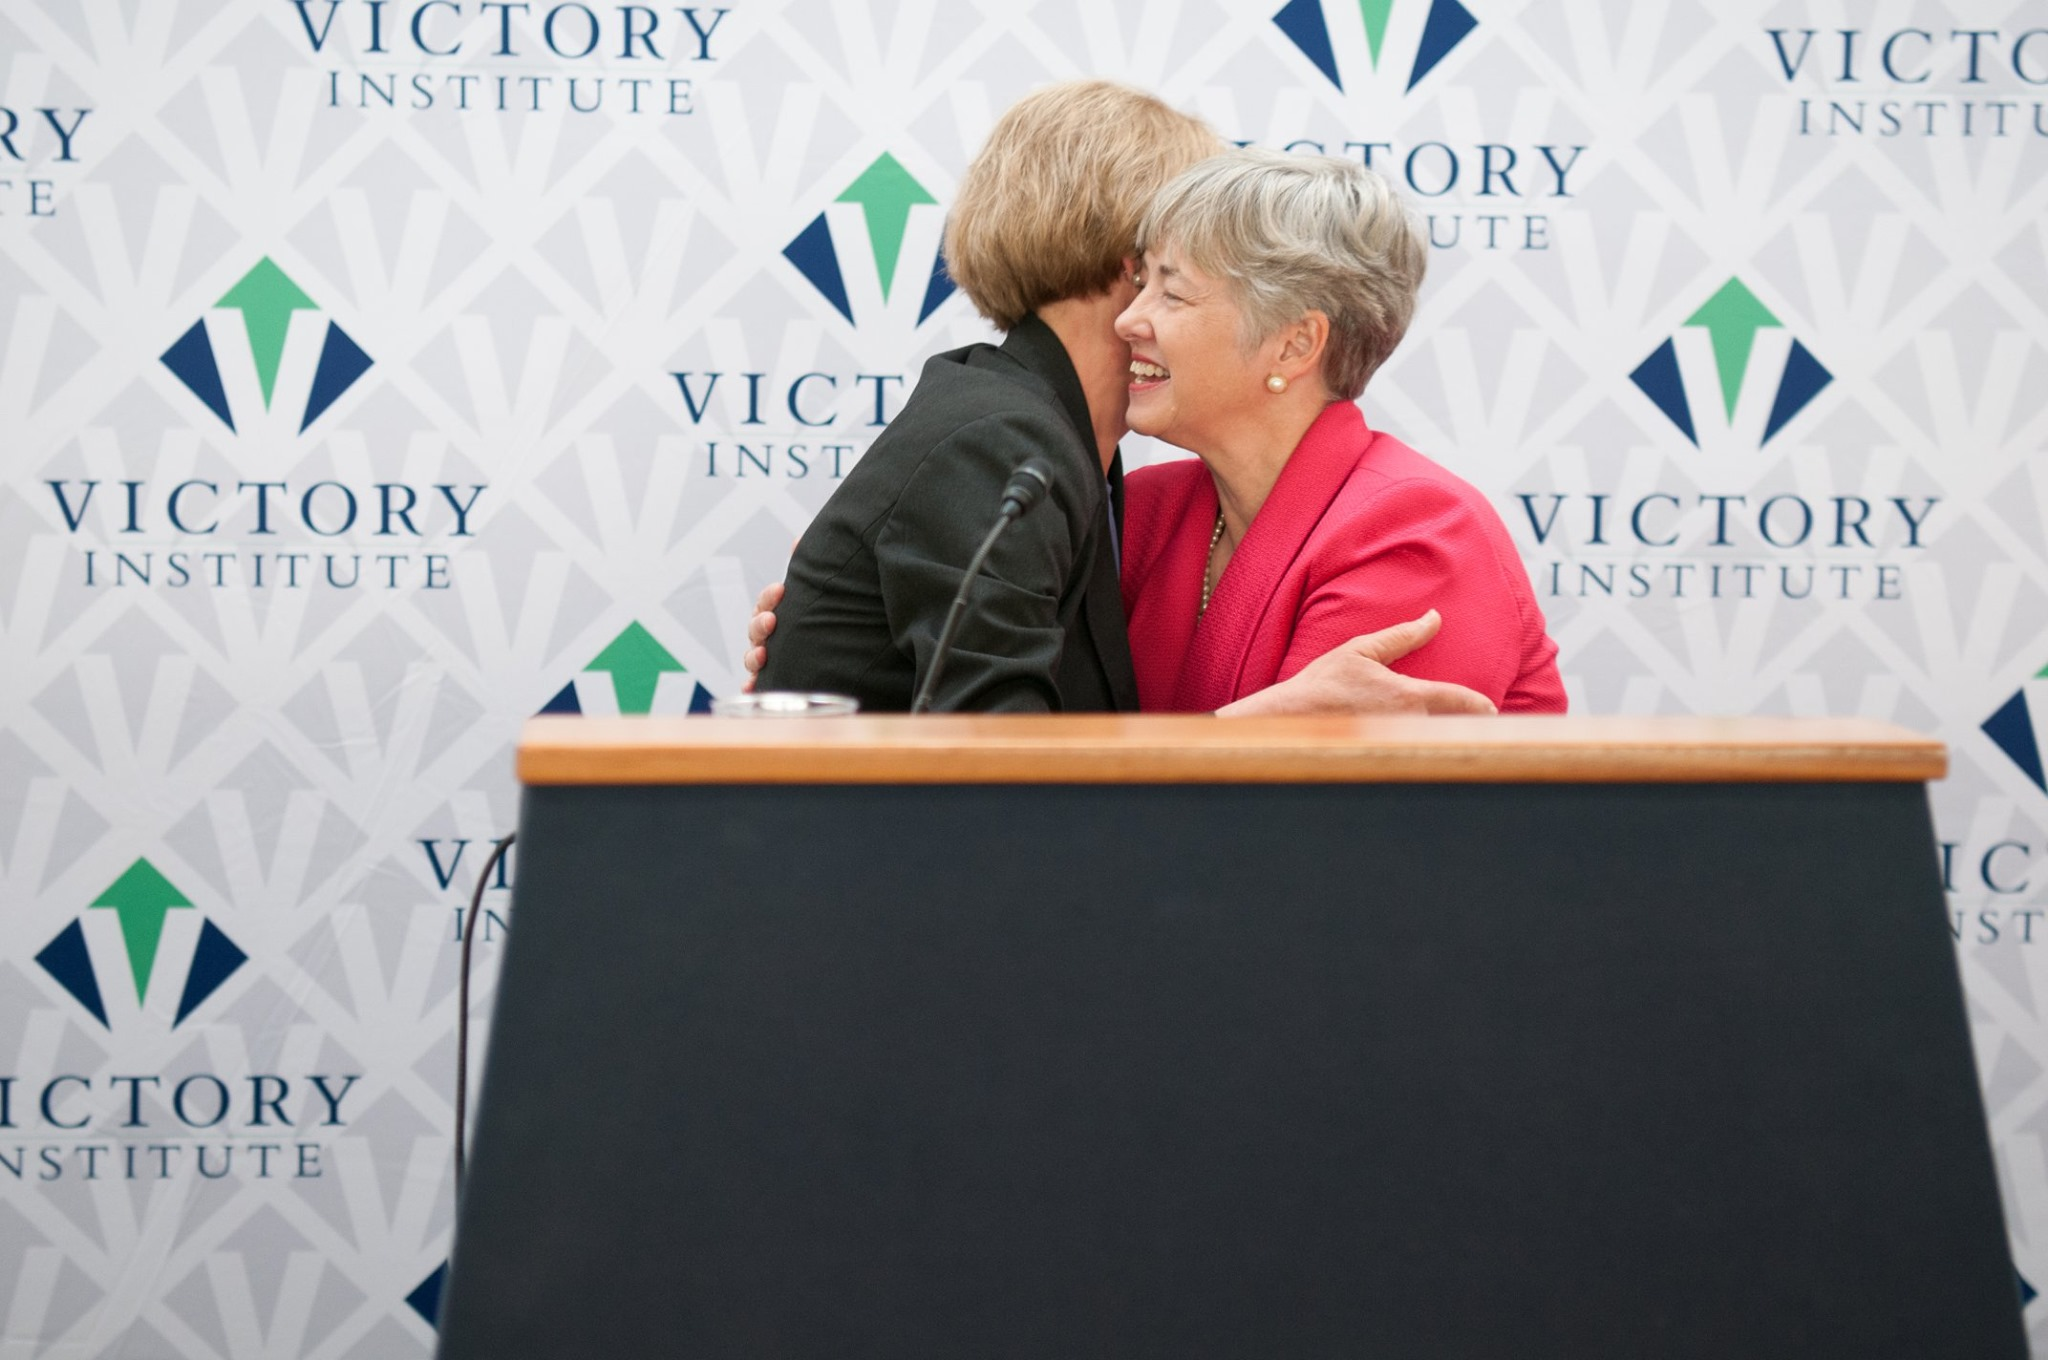 Former Houston Mayor Annise Parker and U.S. Senator Tammy Baldwin embrace at Victory Institute's Pride Month reception on Capitol Hill on June 12, 2019.